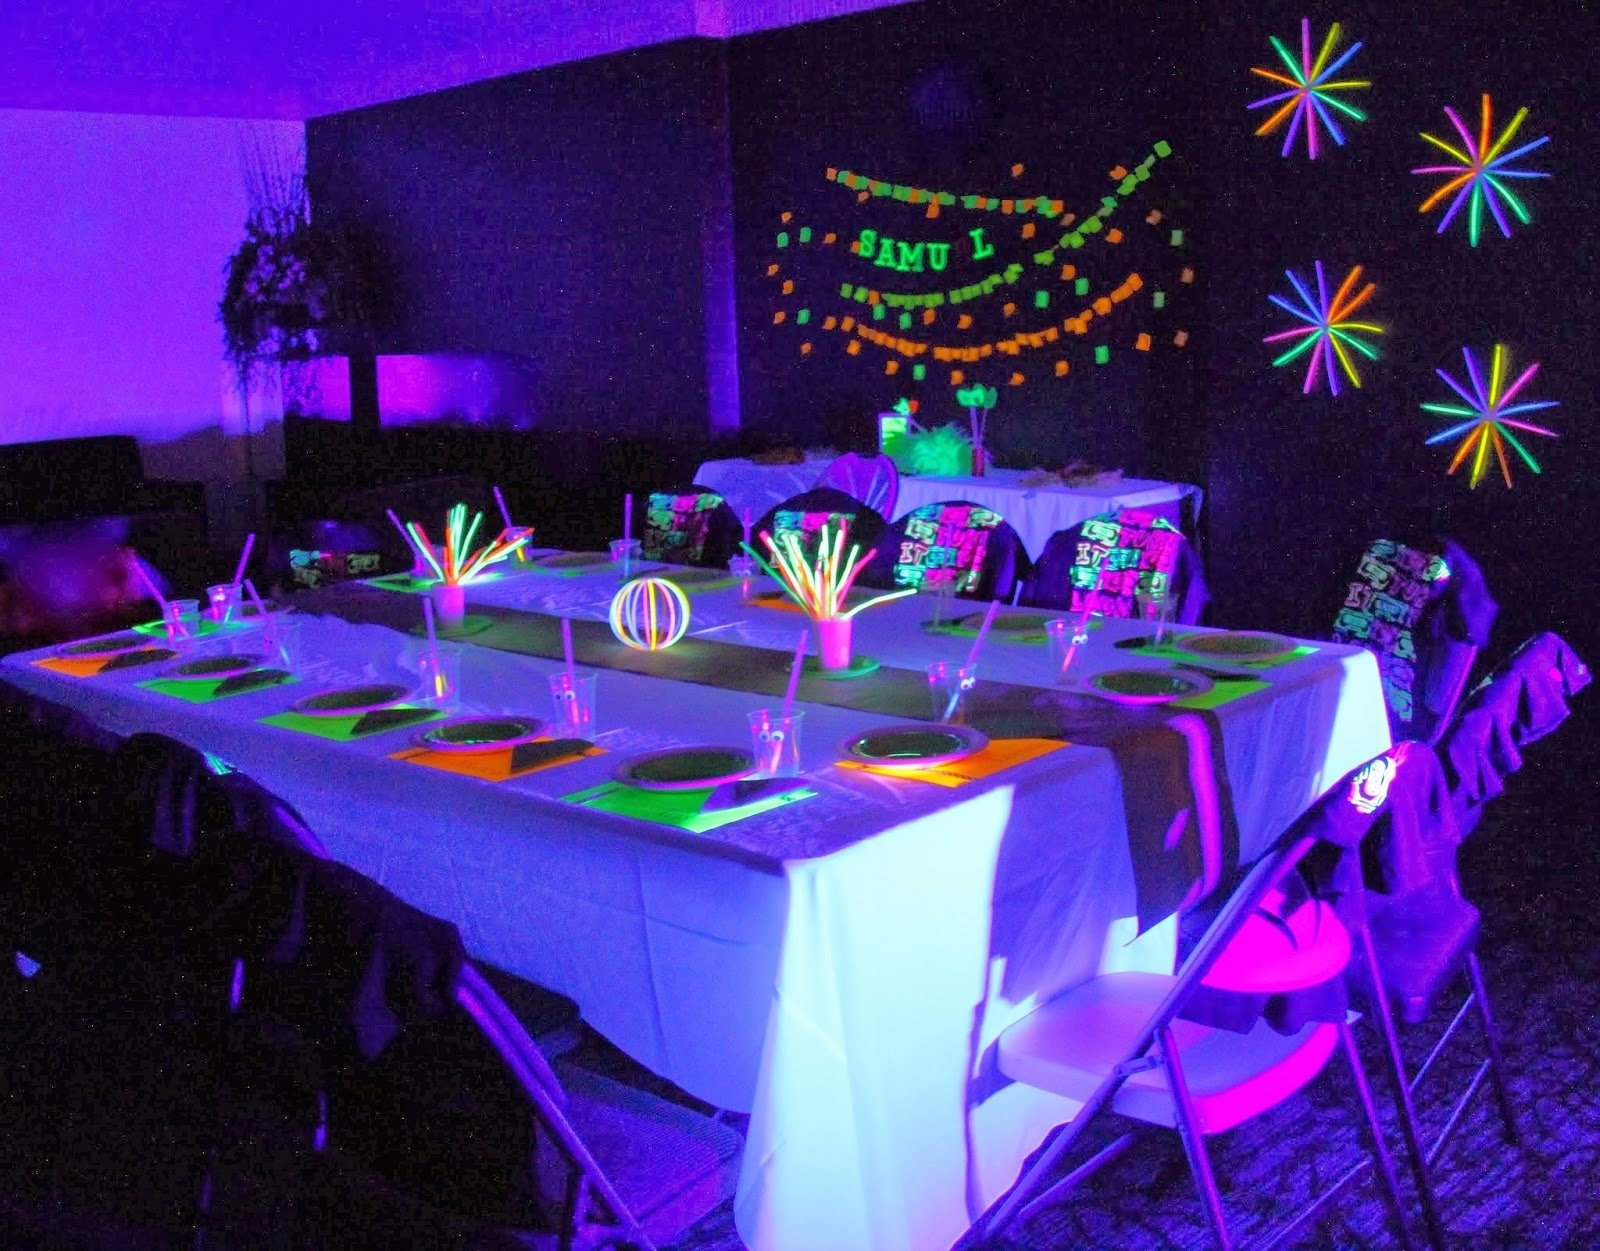 10 Attractive 18Th Birthday Party Ideas For Guys 18th birthday party ideas that are grand for guys whomestudio 3 2020